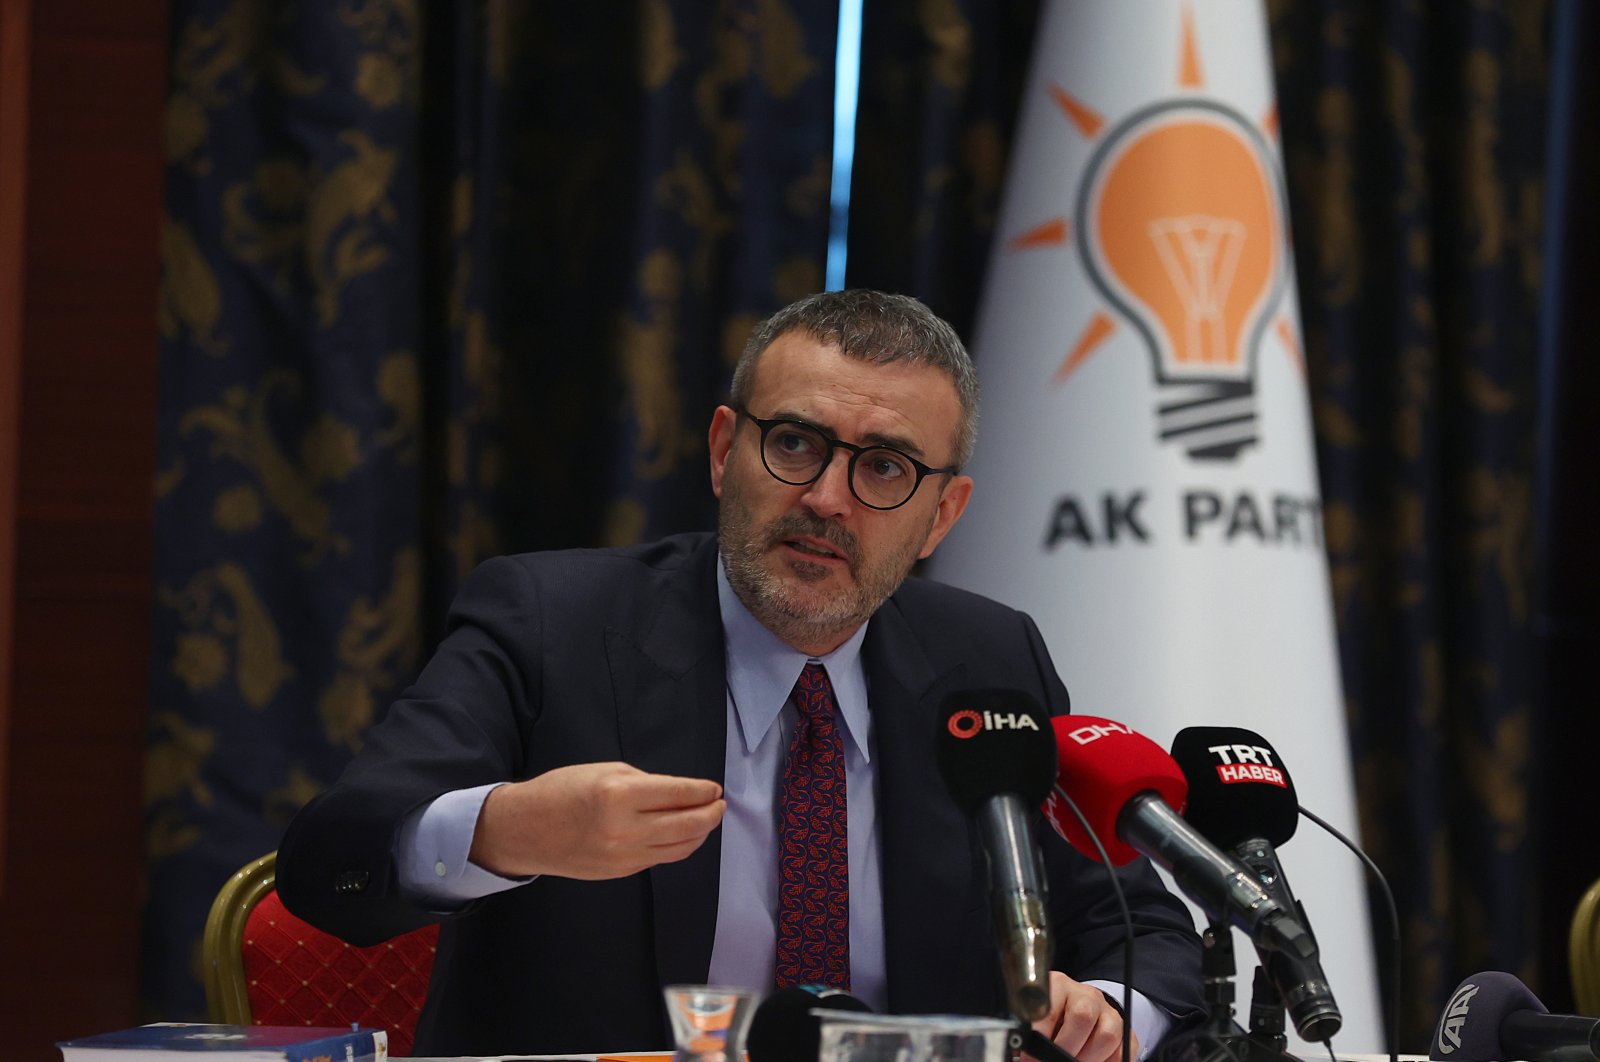 AK Party Deputy Chair Mahir Ünal speaks at a news conference at the party's headquarters in Ankara on Jan. 10, 2020 (AA Photo)